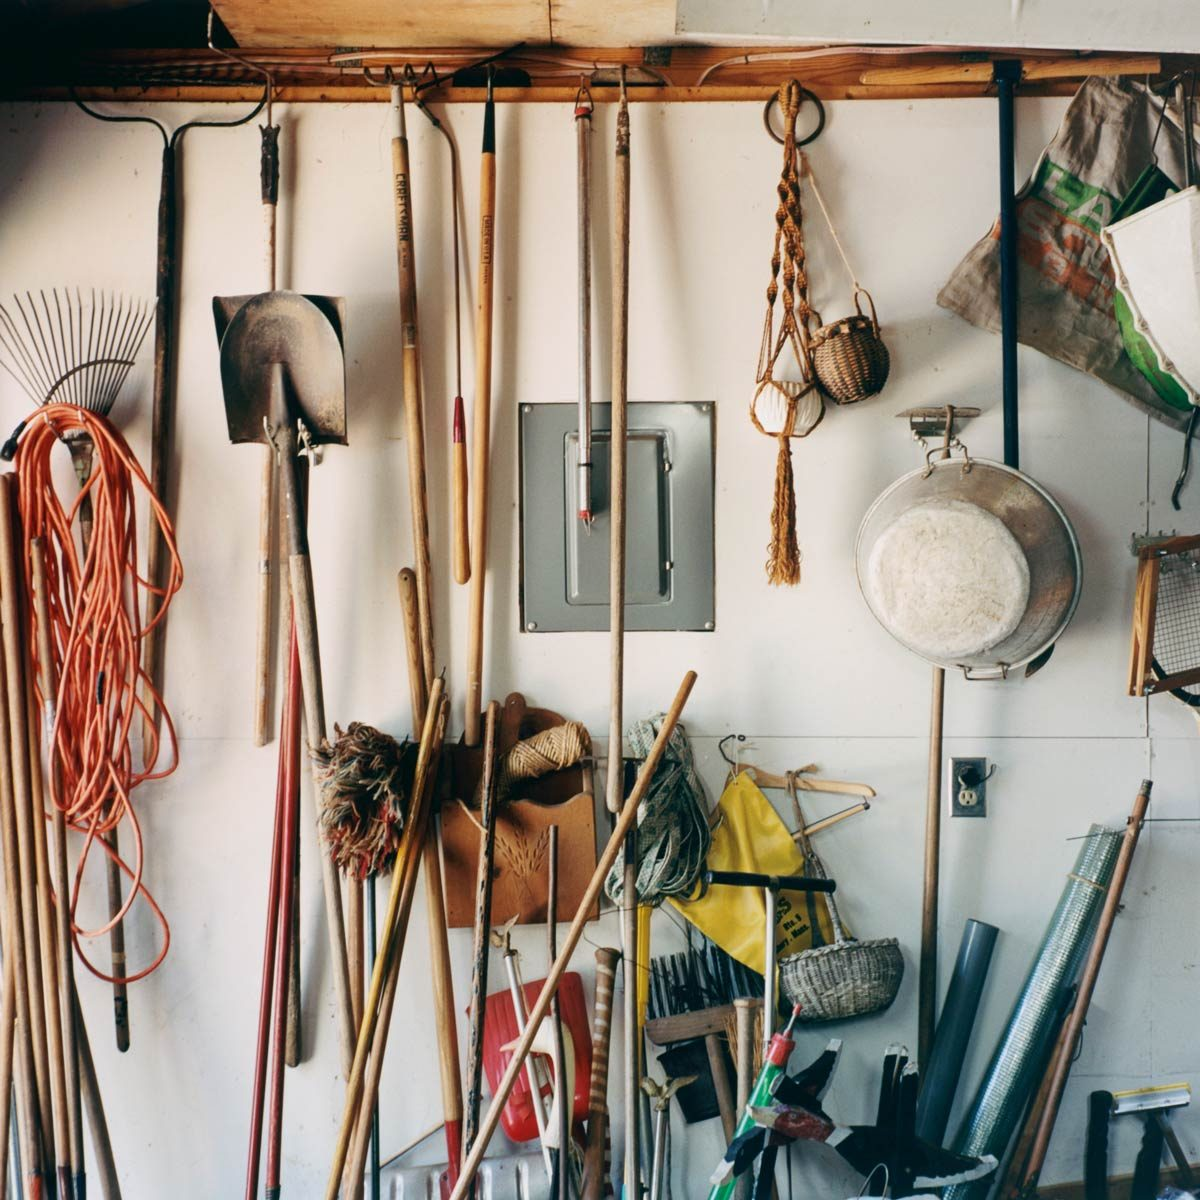 Garden Tools in Garage